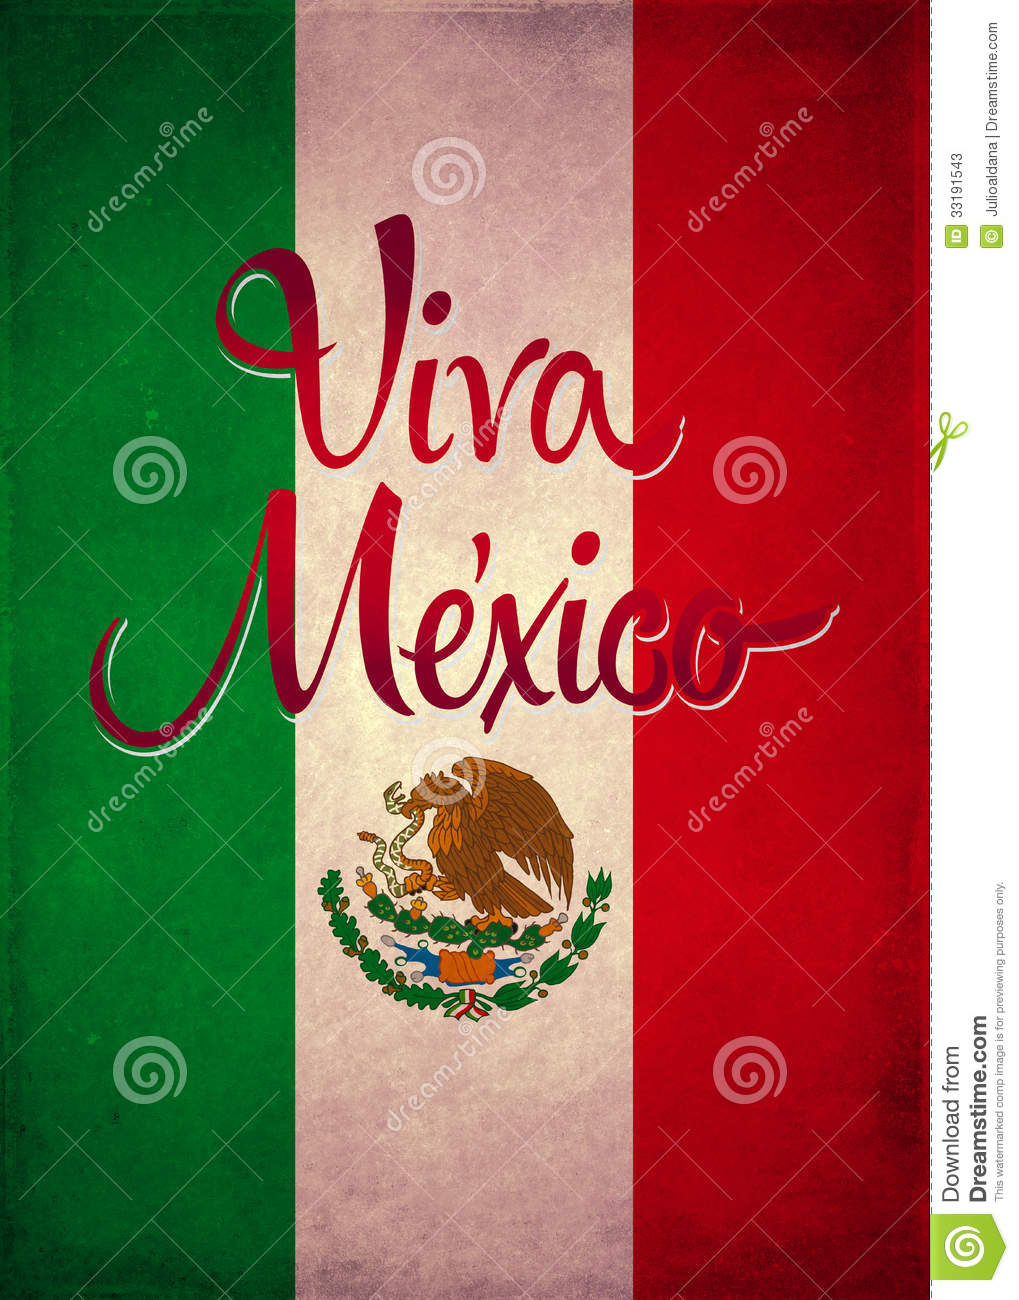 ... similar stock images of ` Vintage viva mexico poster - card template